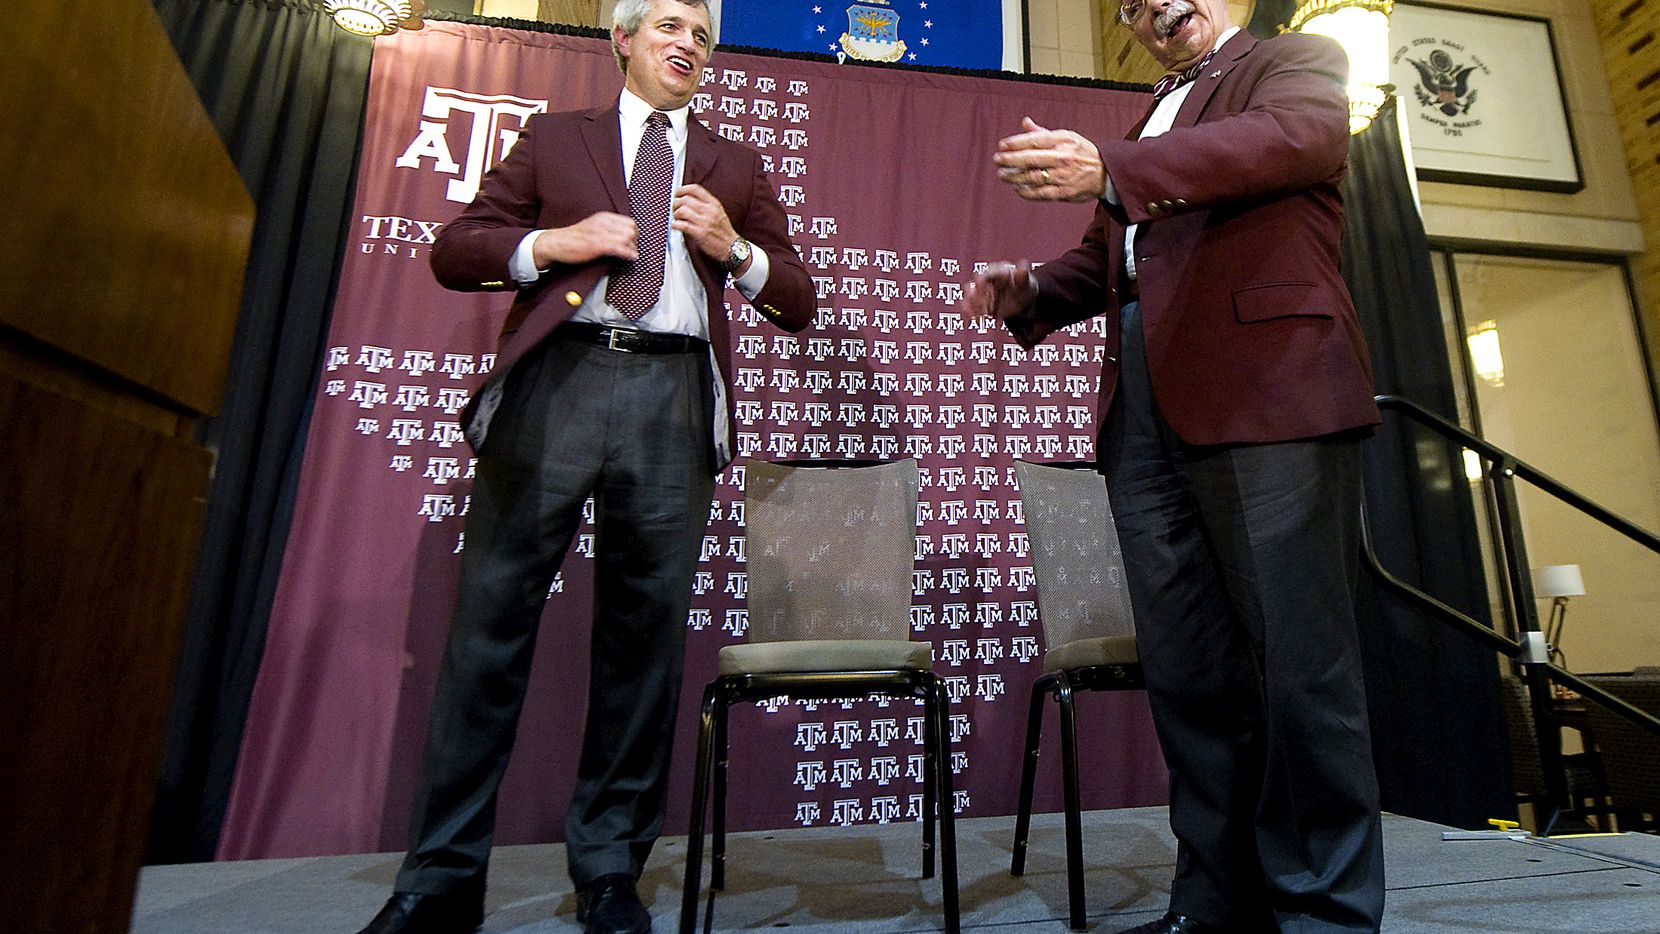 Texas A&M University president R. Bowen Loftin, right, welcomes Eric Hyman as the school's new athletic director during a news conference, Saturday, June 30, 2012, in College Station, Texas. (AP Photo/Bryan-College Station Eagle, Stuart Villanueva) 07012012xSPORTS